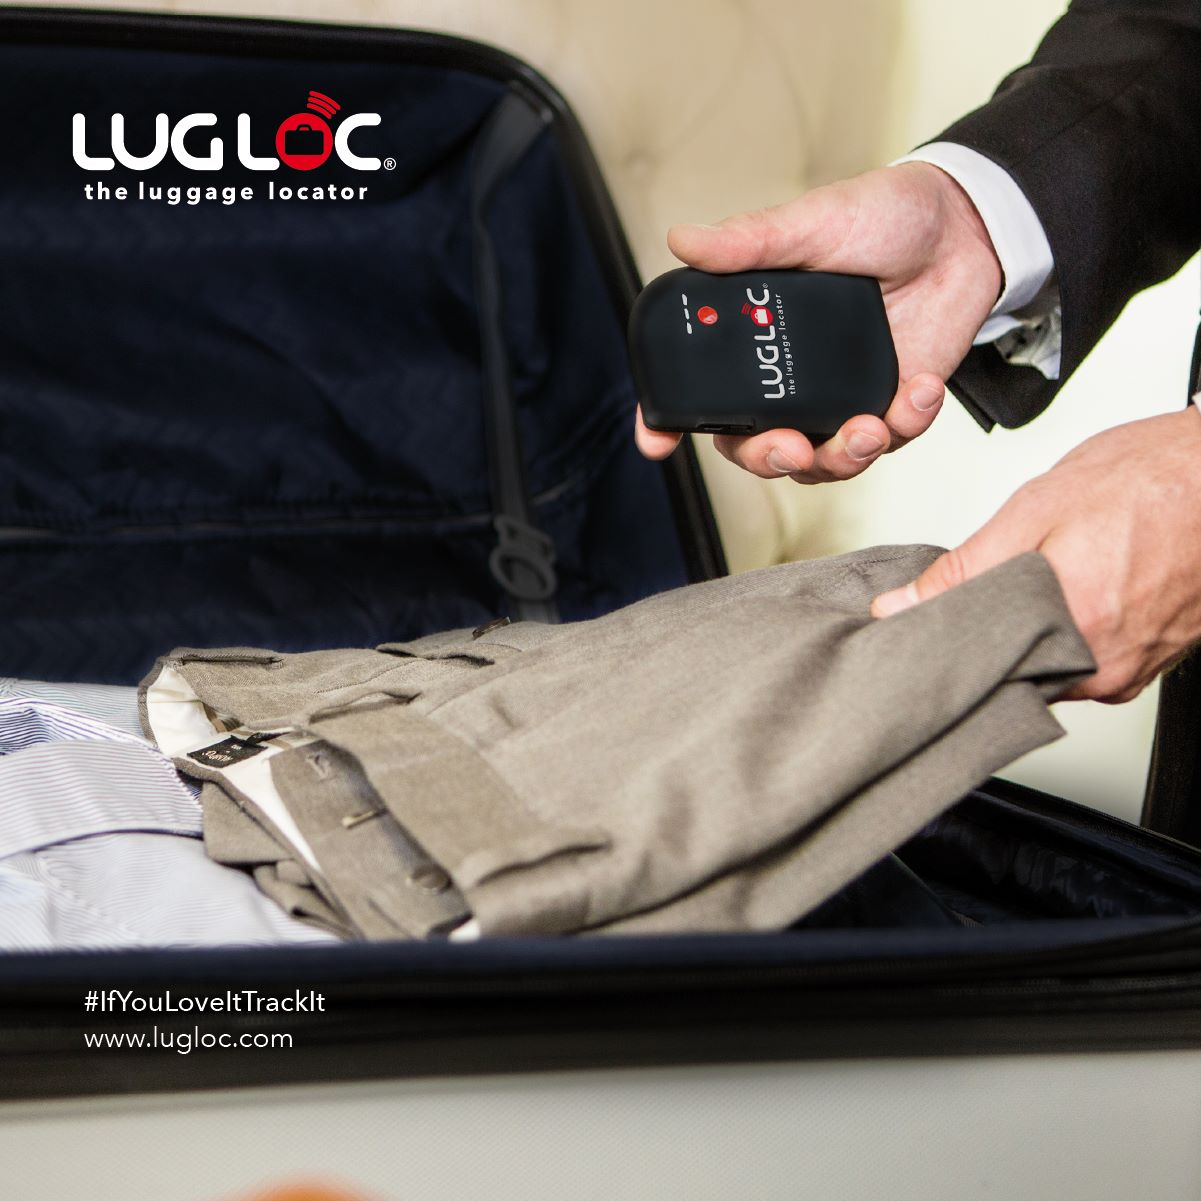 Hand holding Lugloc and putting it inside a packed luggage